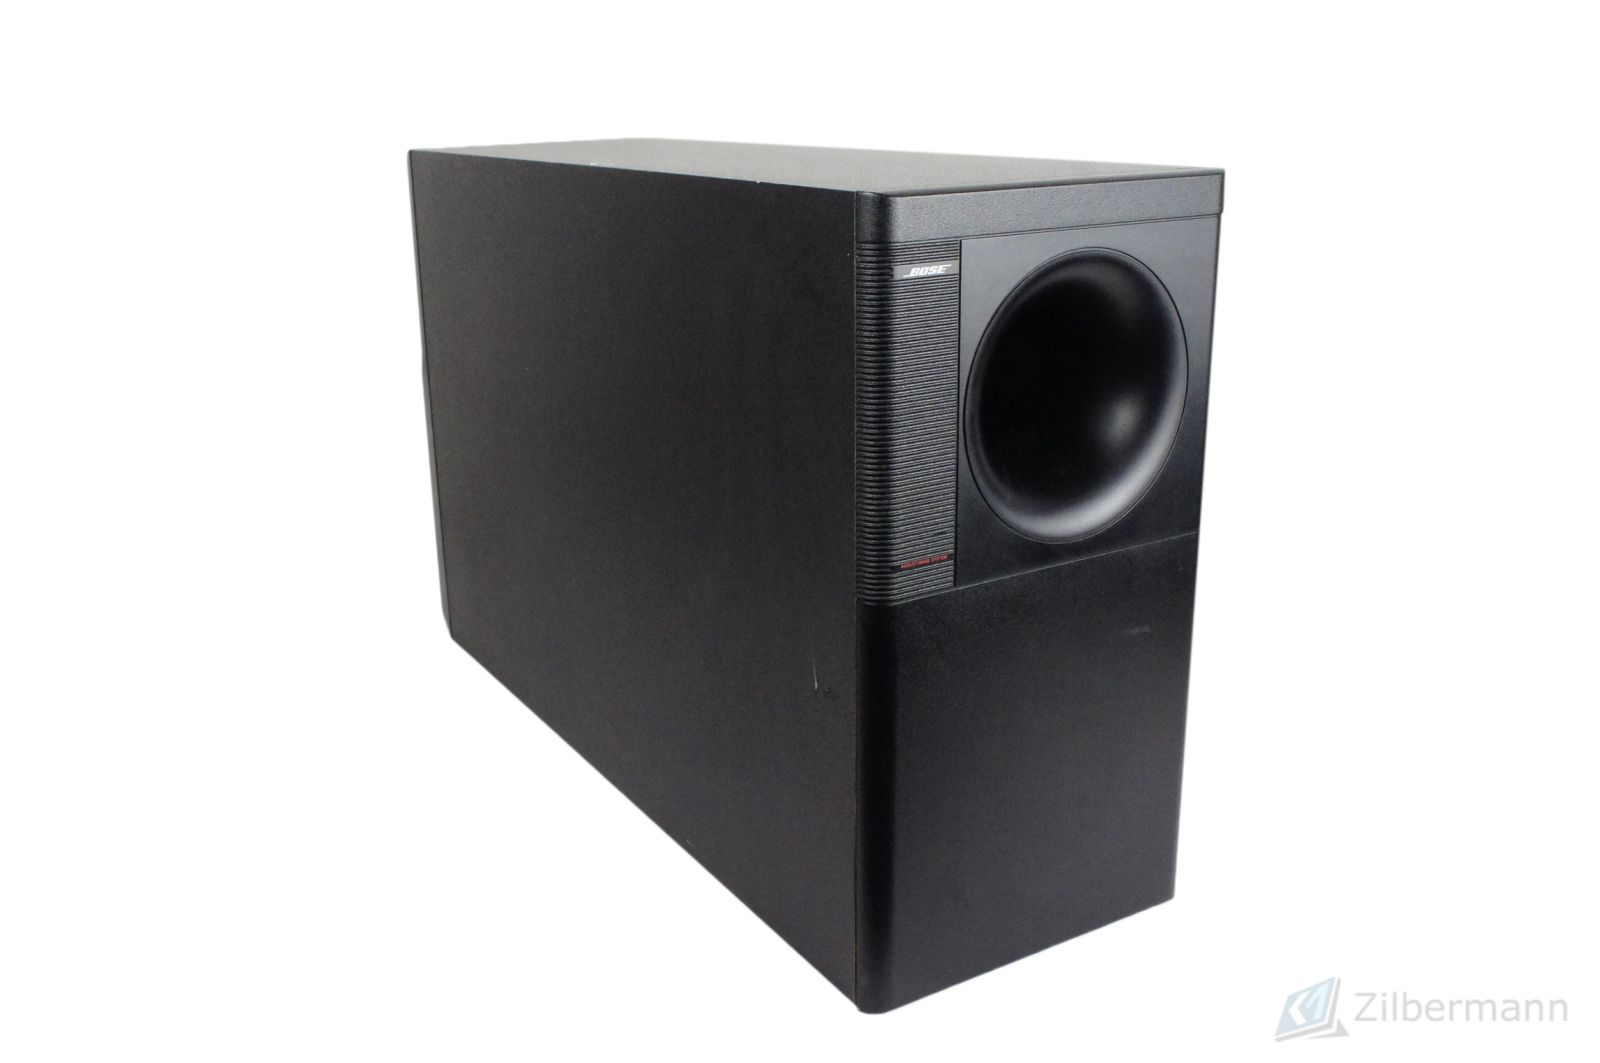 Bose_Acoustimass_10_Series_II_5.1_Subwoofer_02